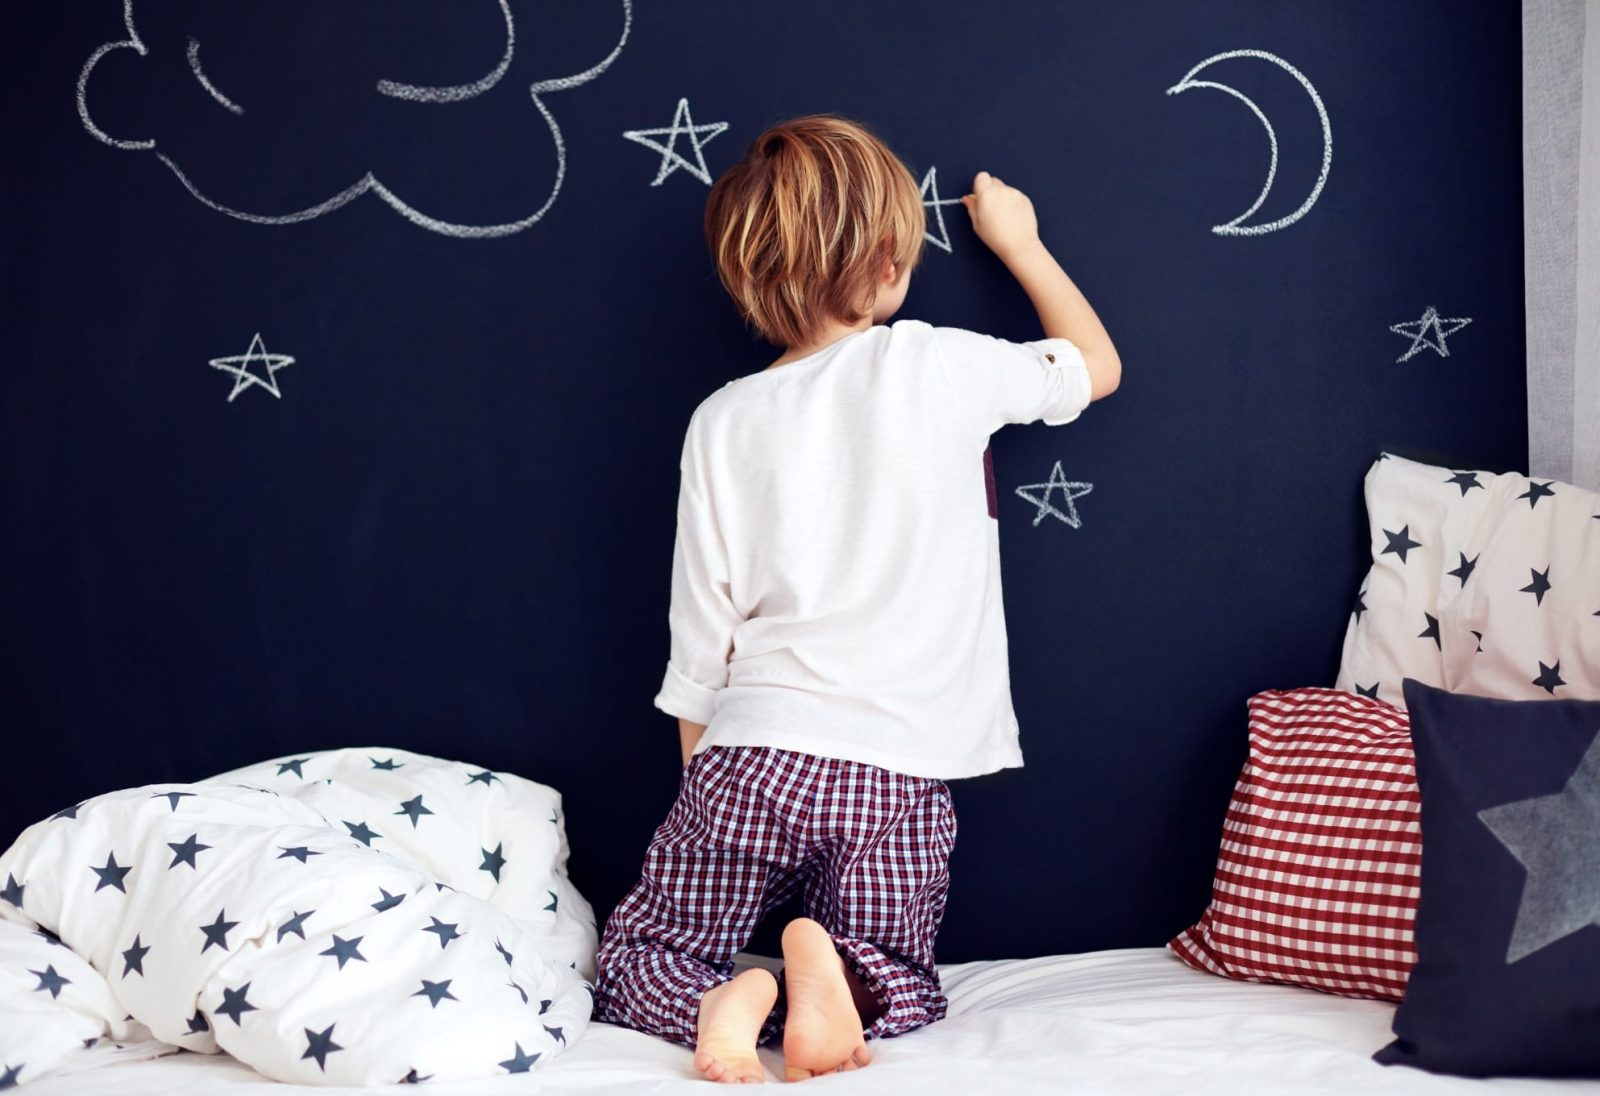 Child drawing on chalkboard